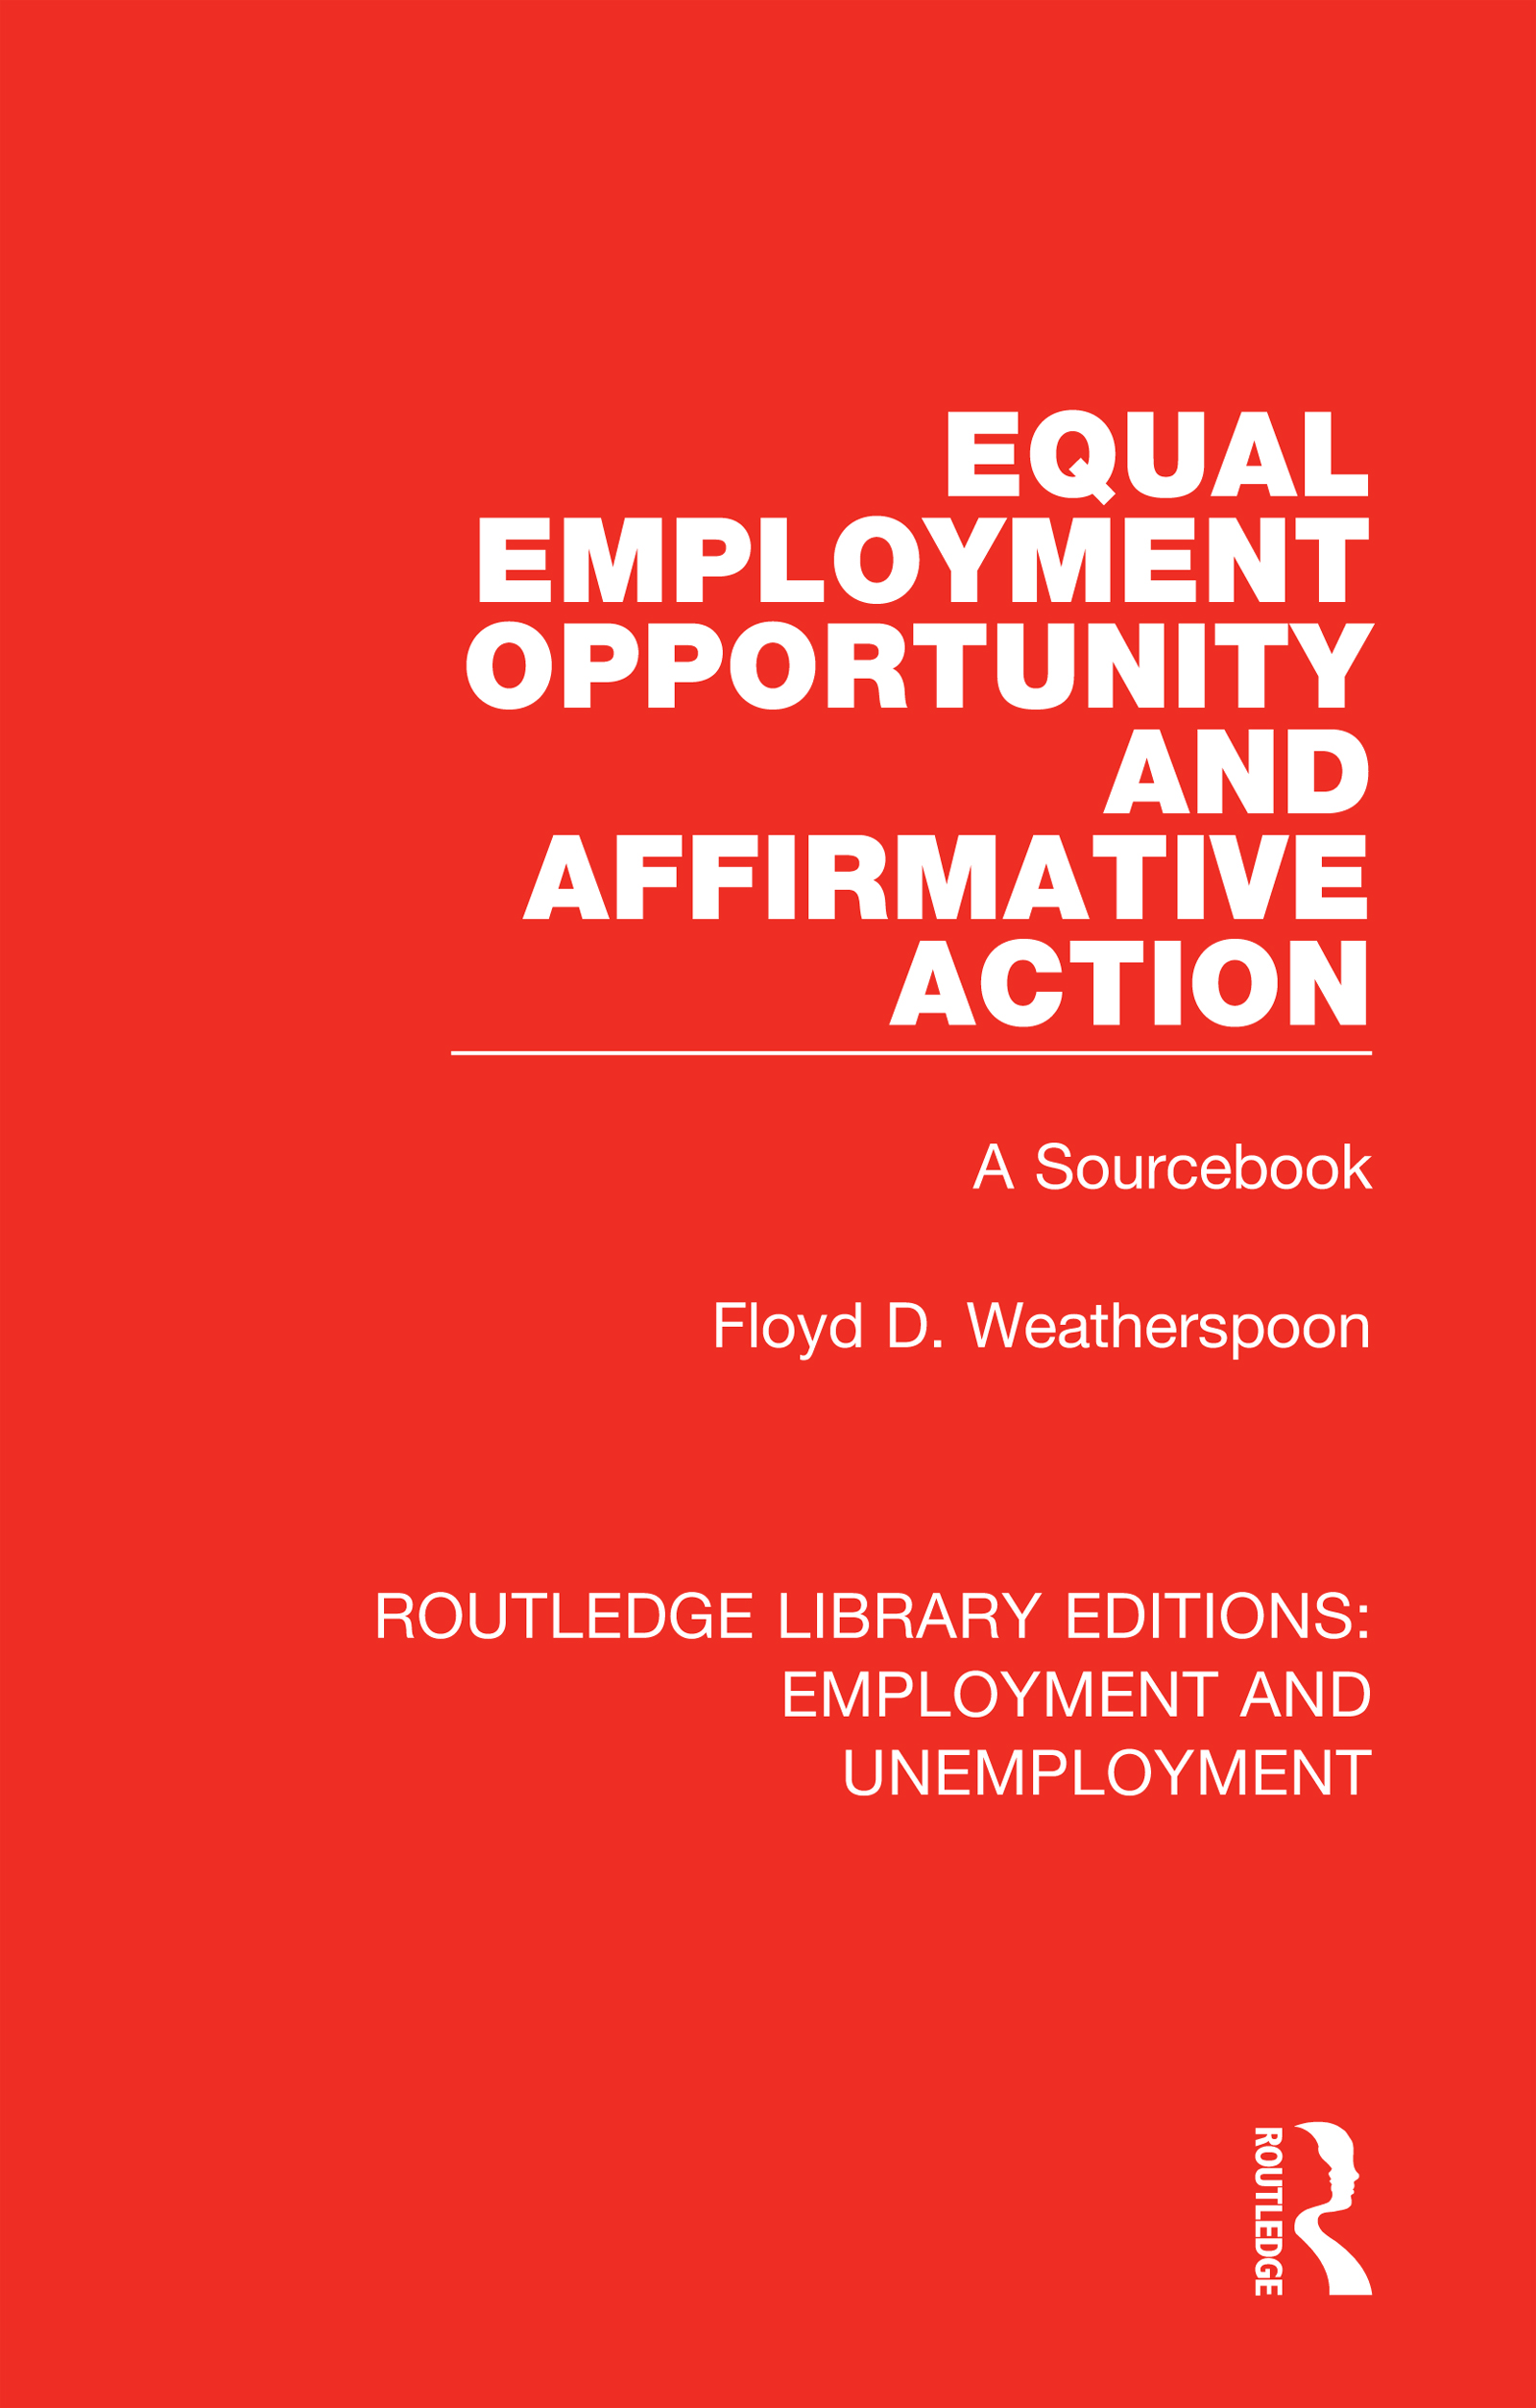 Equal Employment Opportunity and Affirmative Action